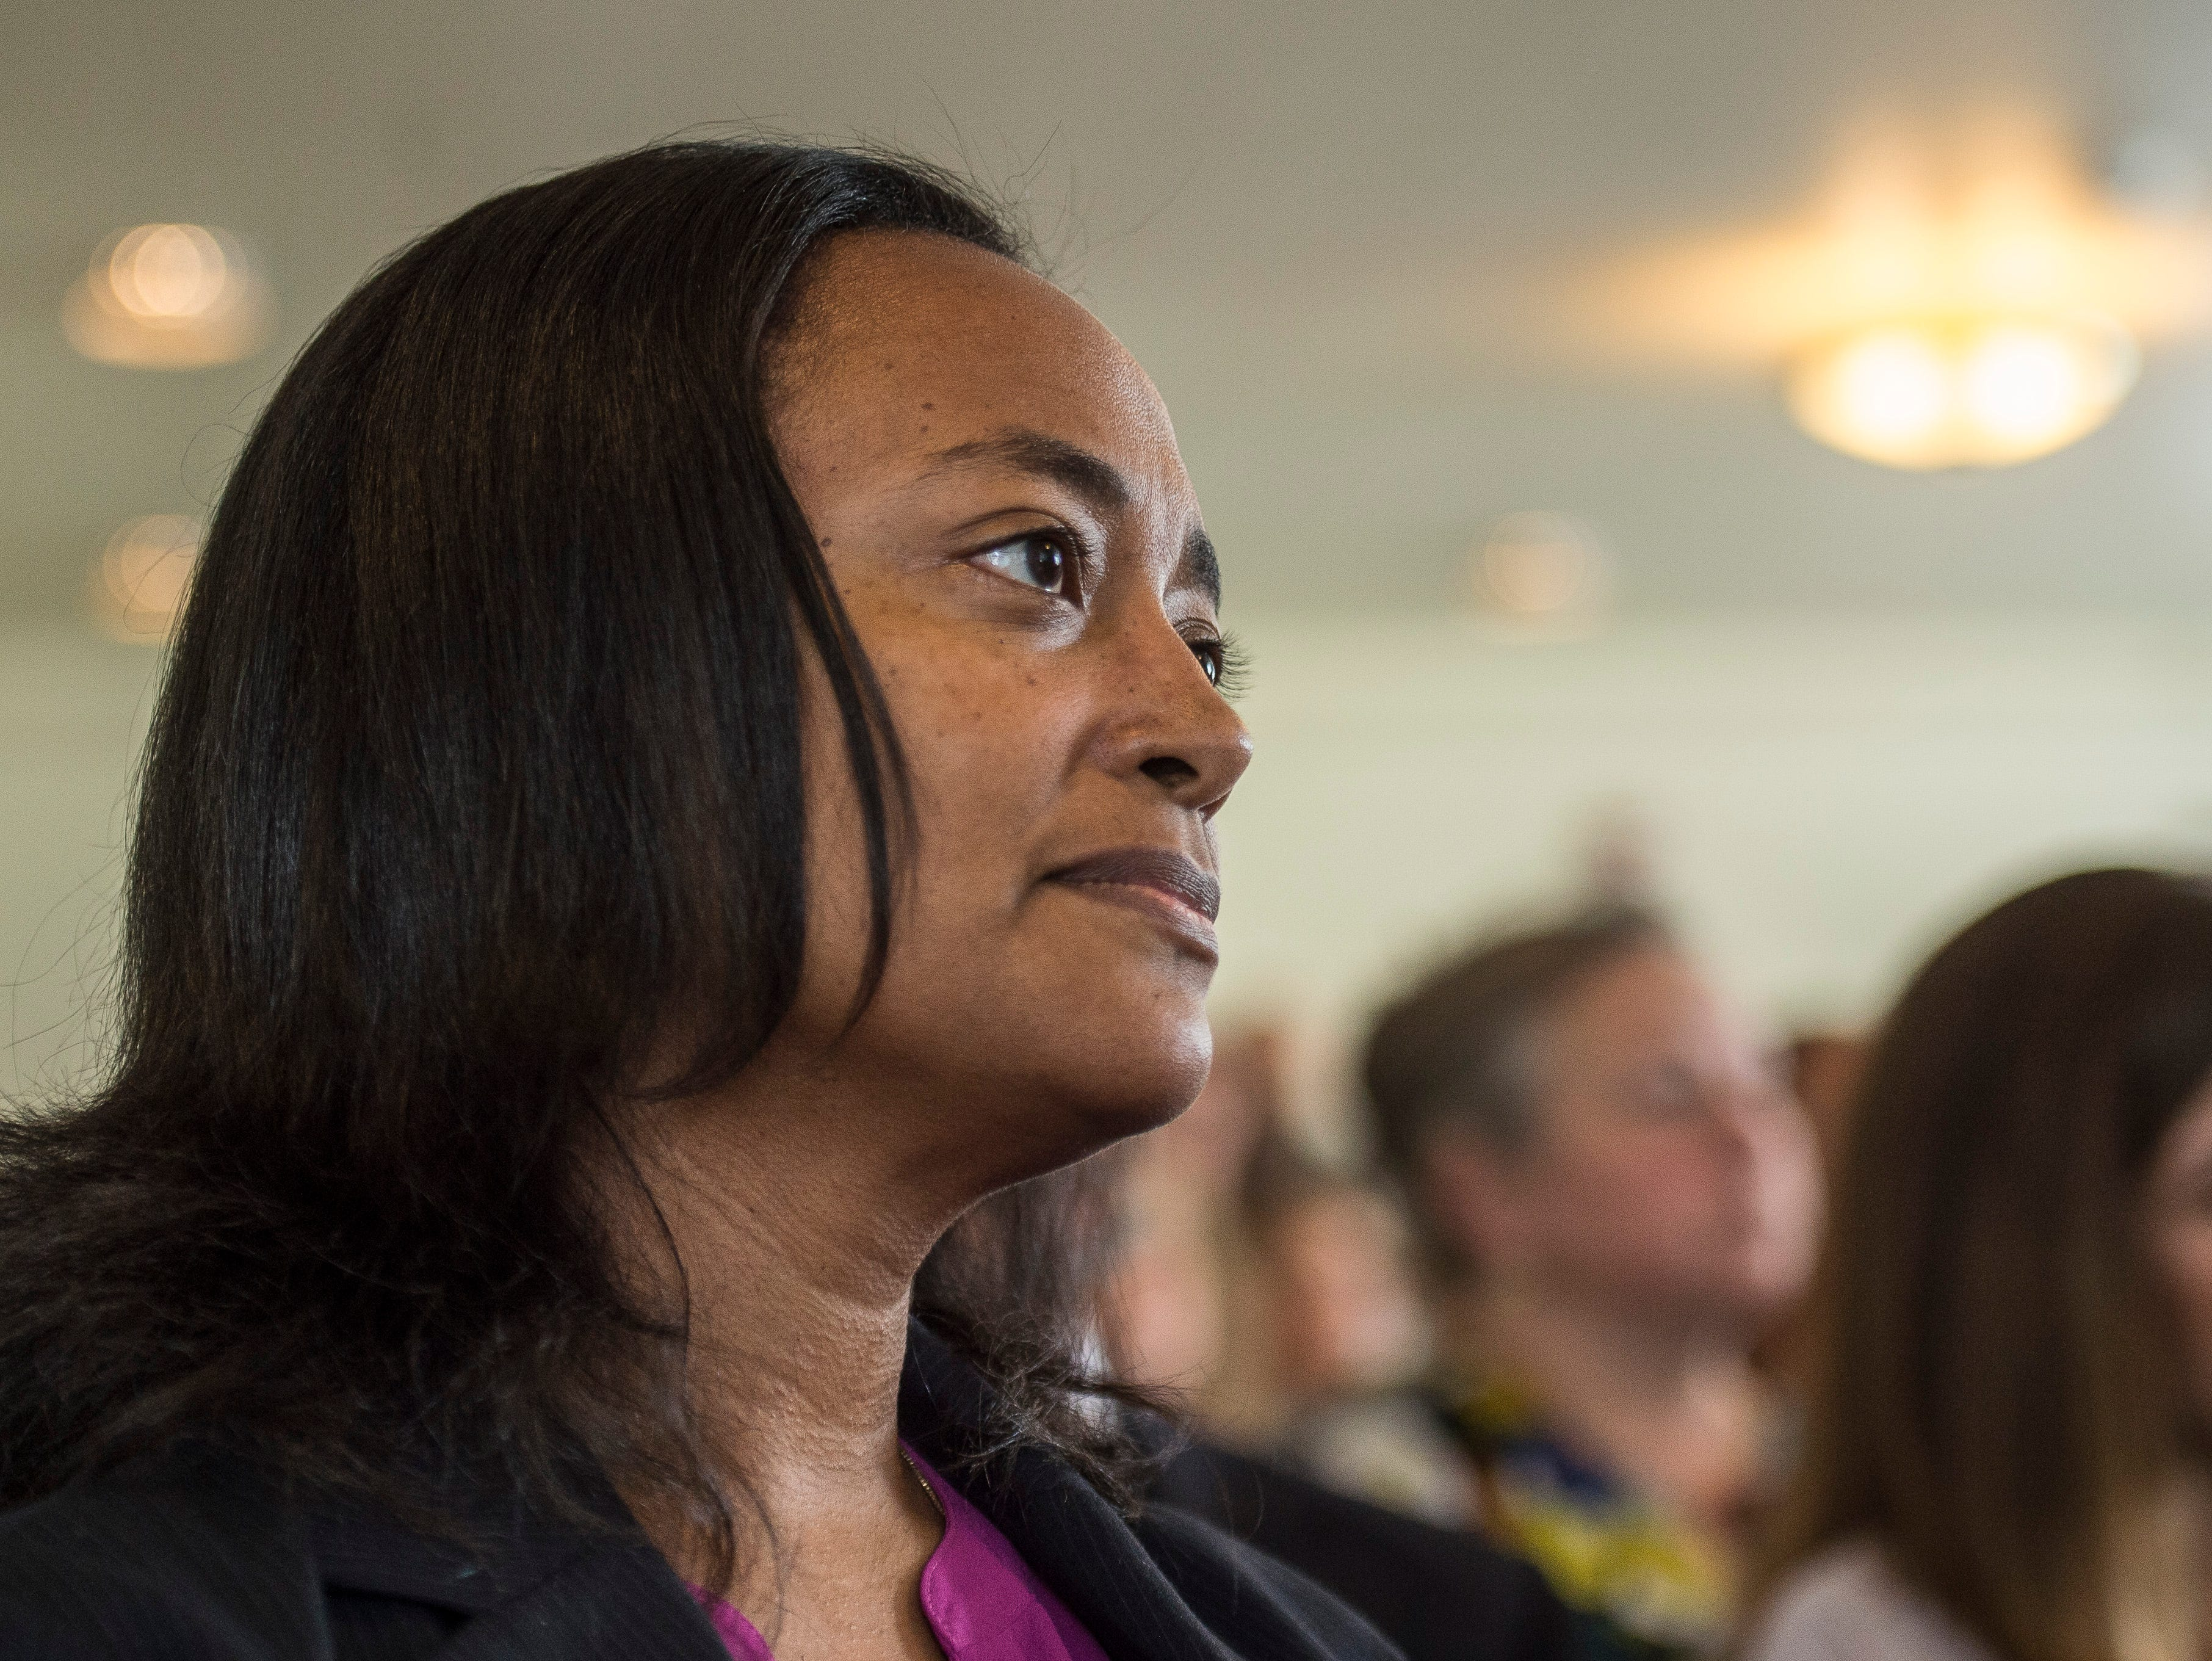 Terry Stigdon with the Indiana Dept. of Child Services listens during a news conference celebrating the opening of the Winchester House, a new drug treatment facility for women, in Winchester, Ind., on Wednesday, Aug. 1, 2018.